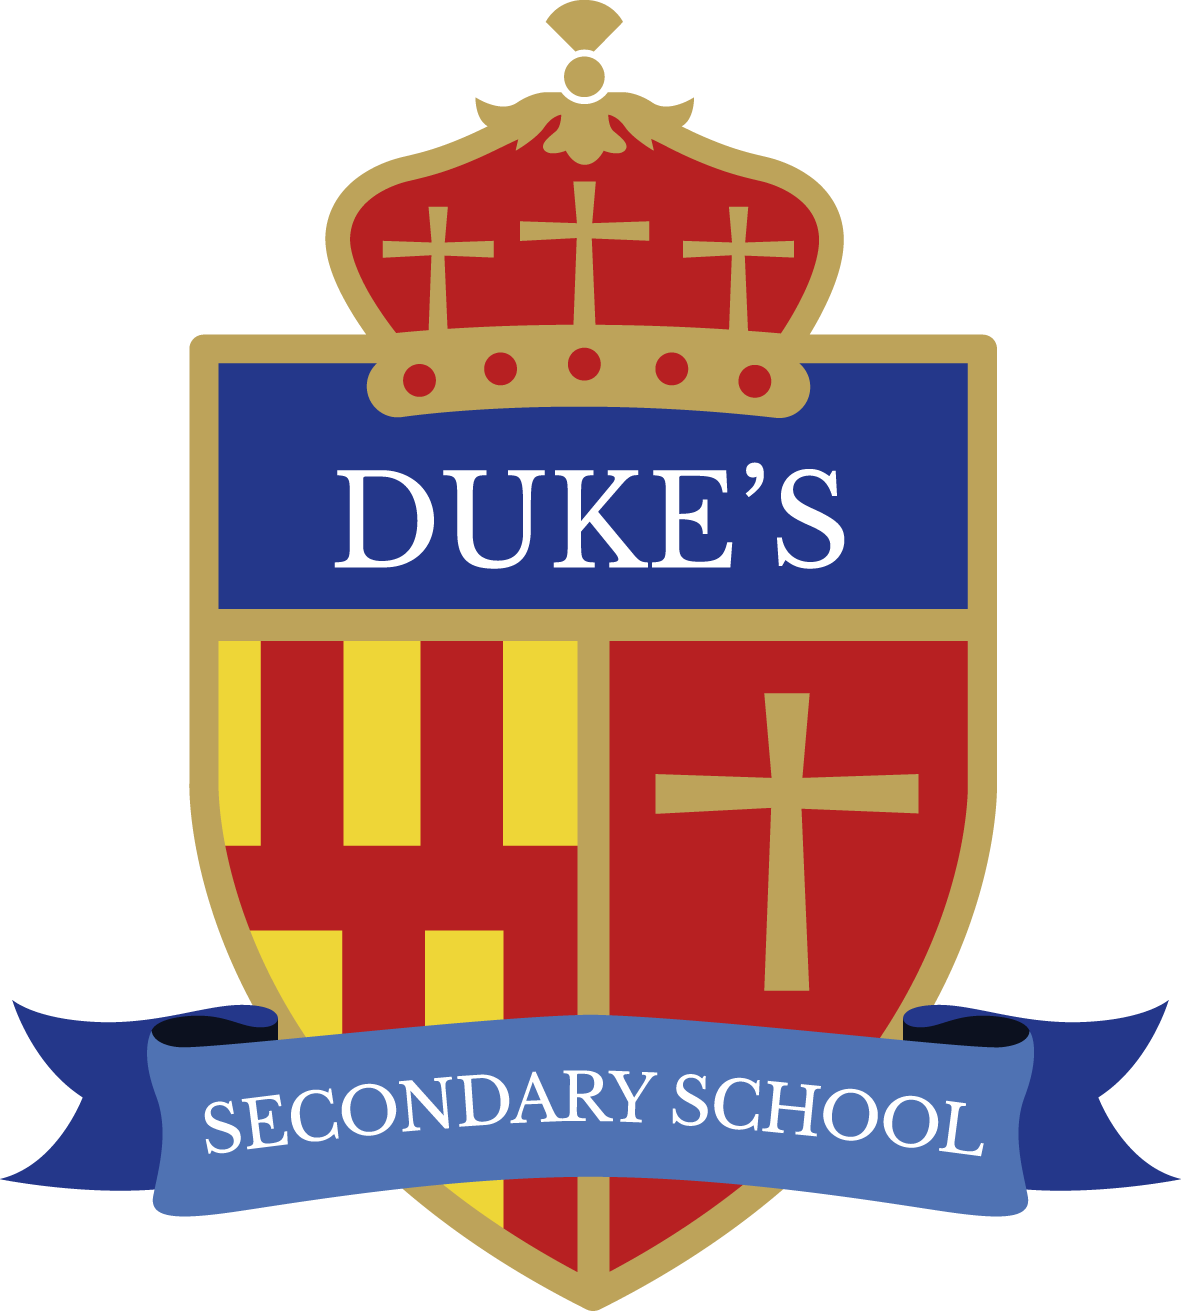 Duke's Secondary School Logo